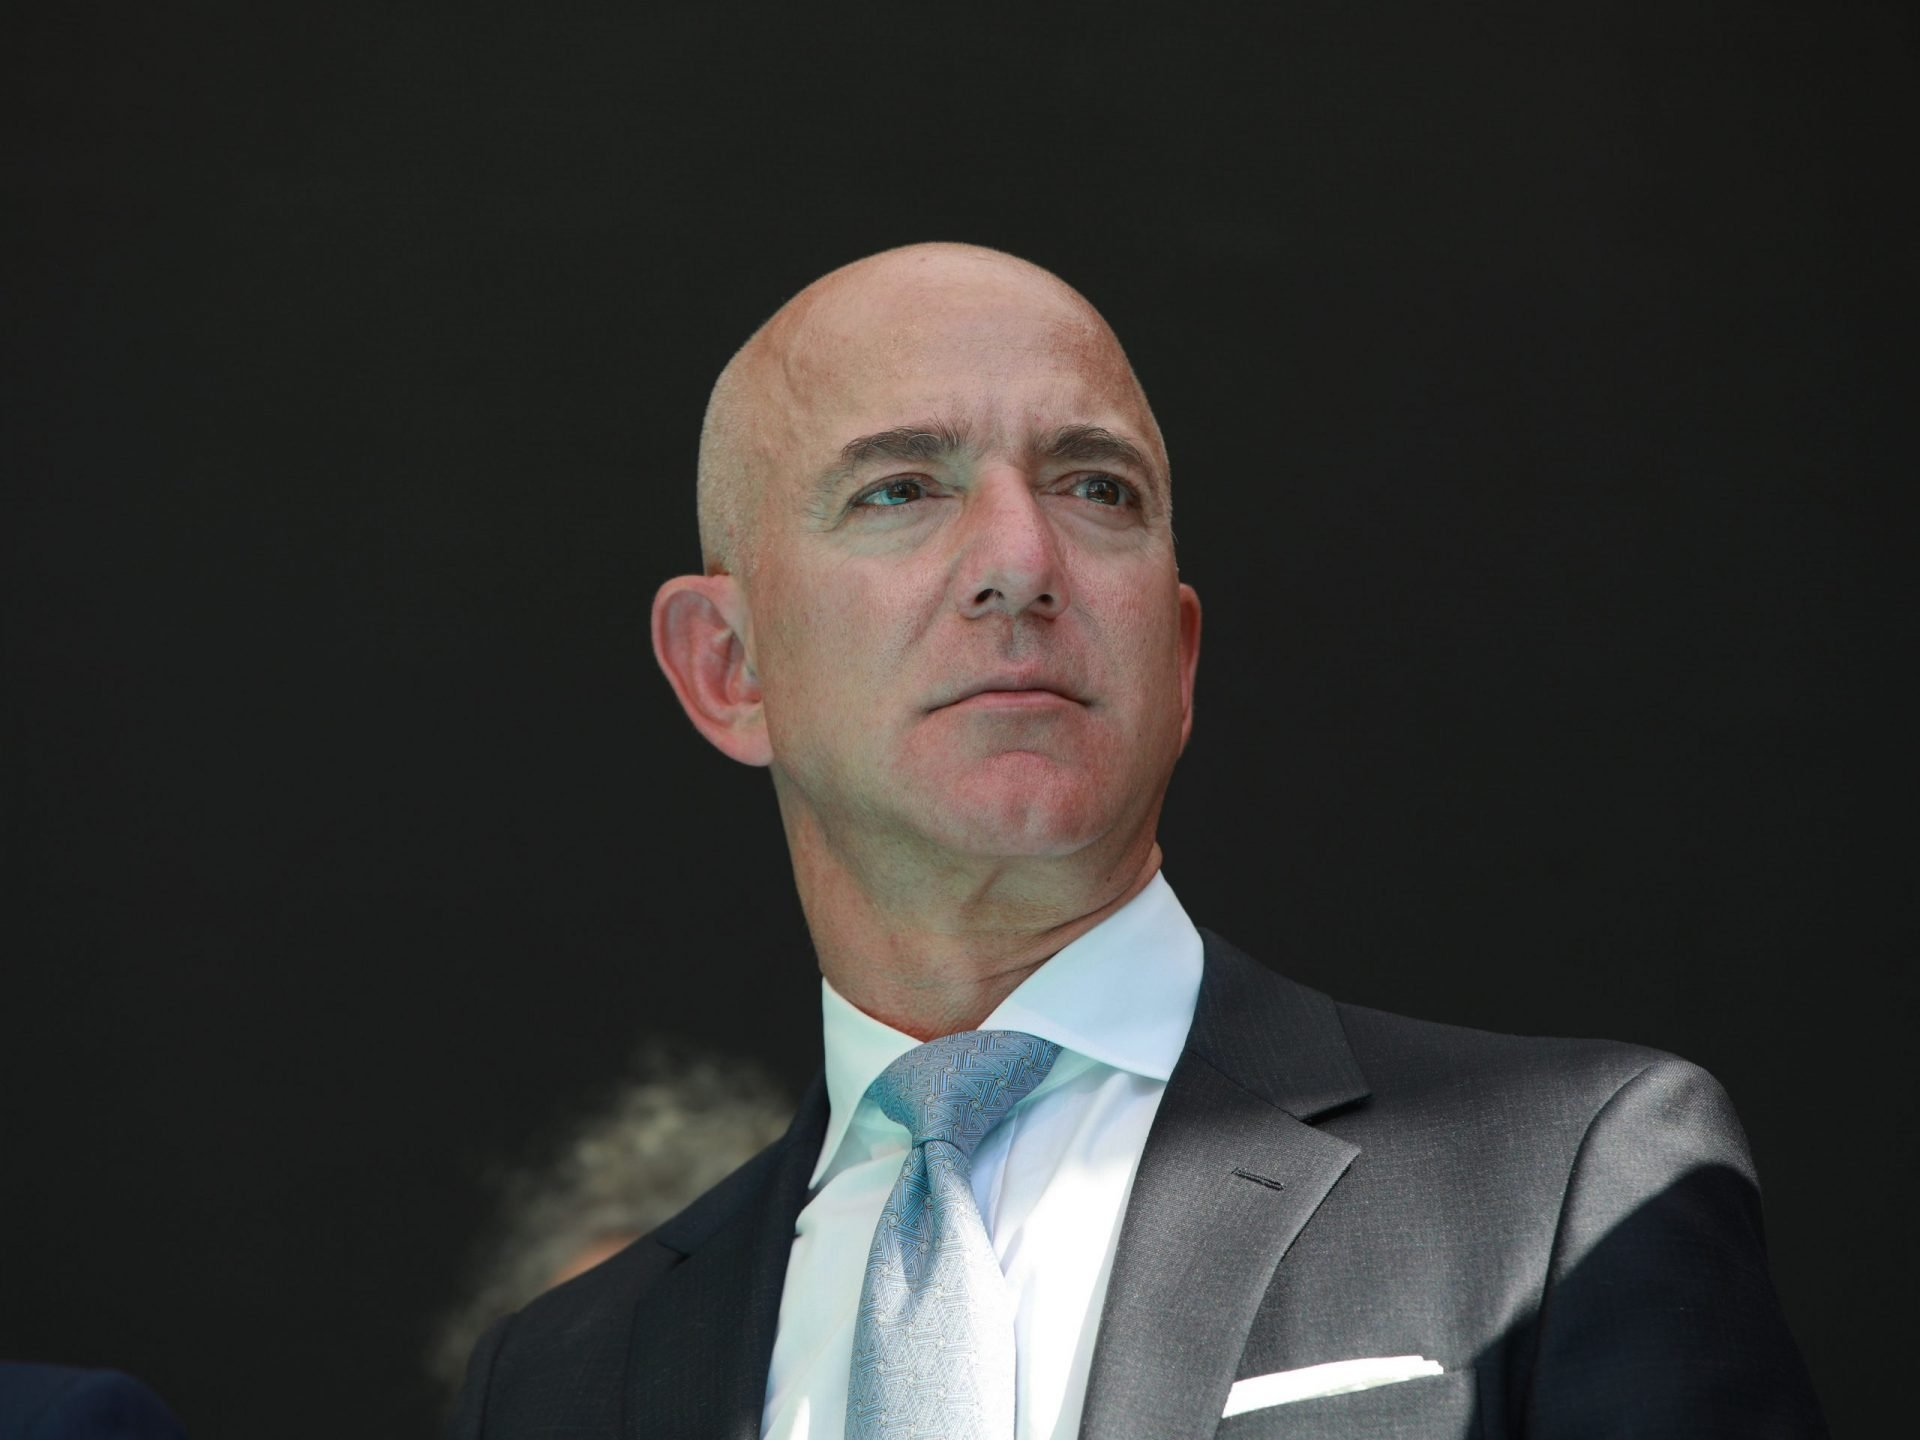 5 Mind-Blowing Facts About Jeff Bezos' Wealth